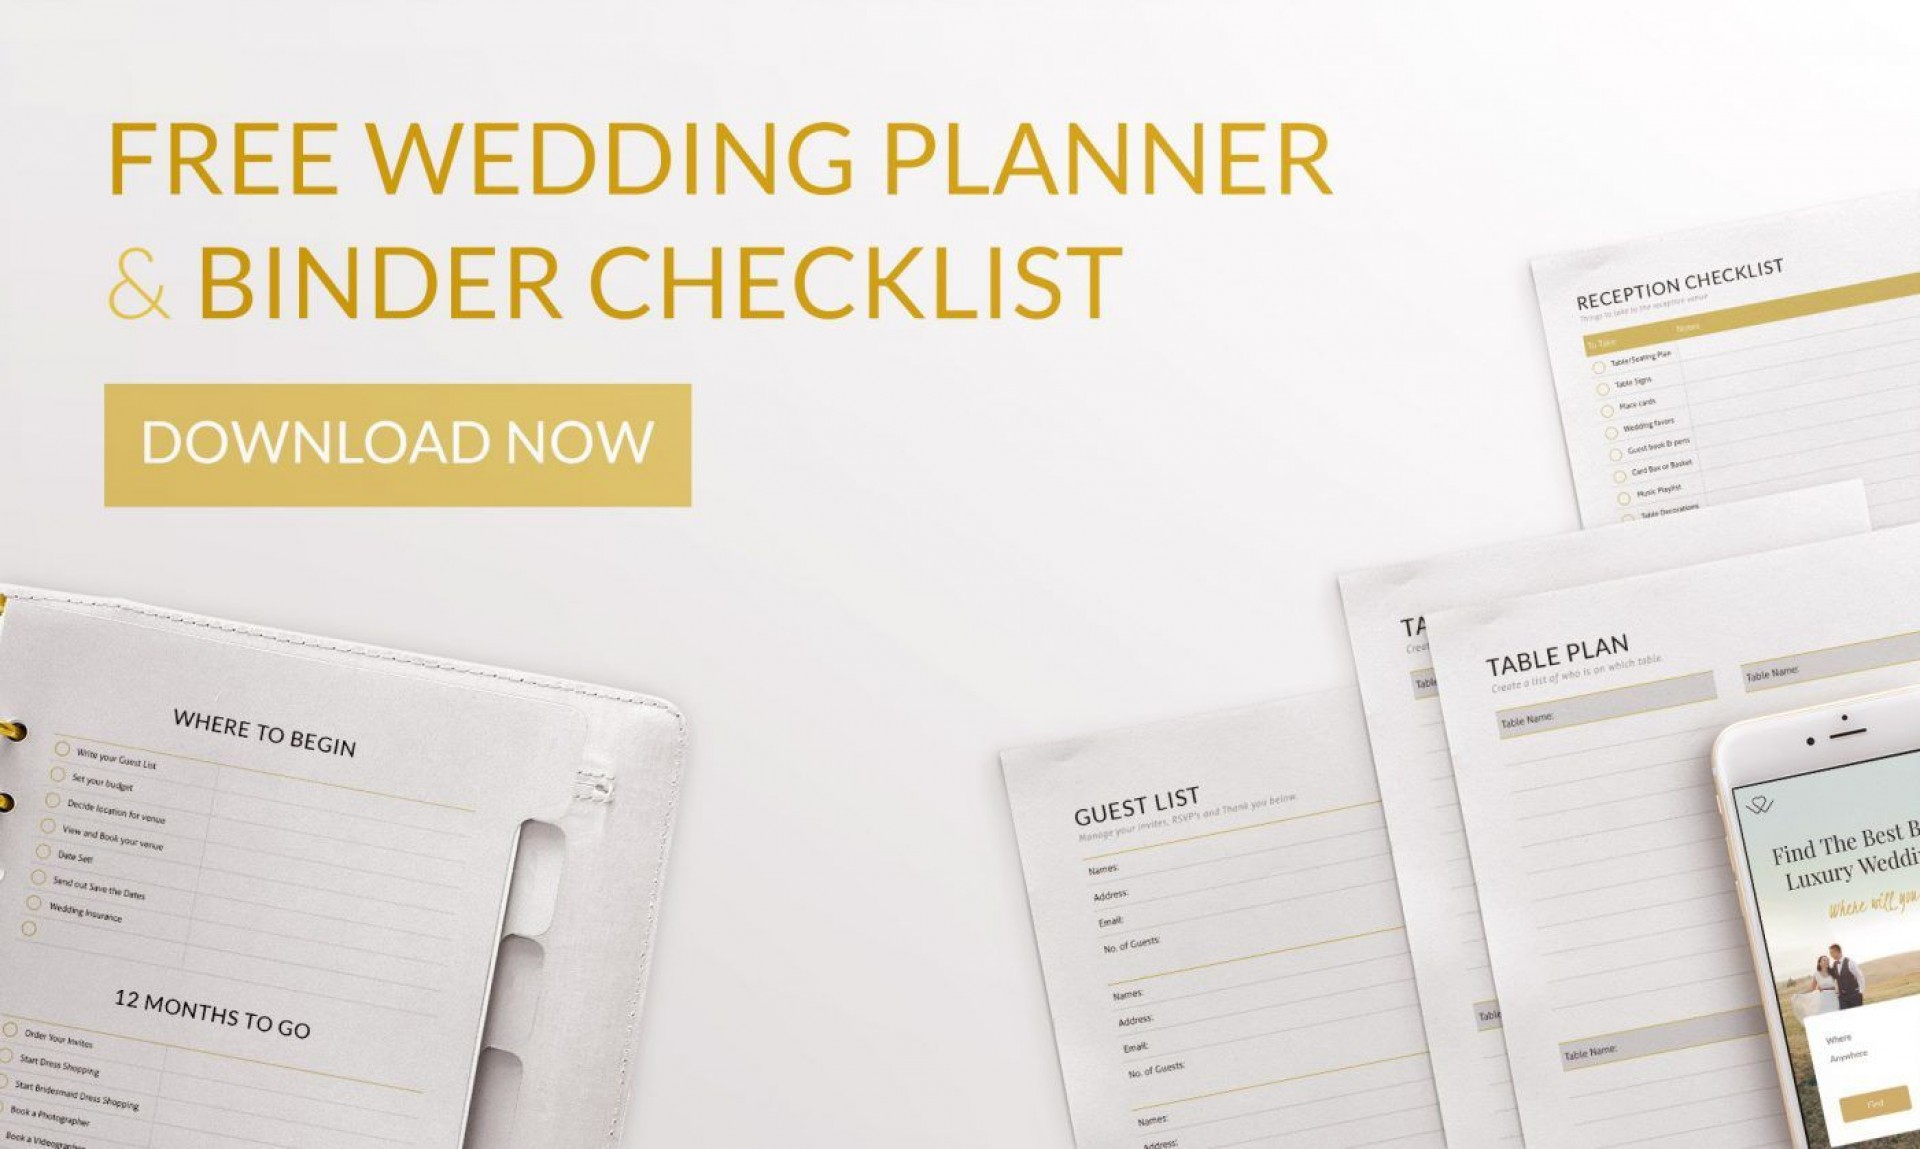 005 Imposing Free Event Planner Checklist Template Concept  Planning Party1920